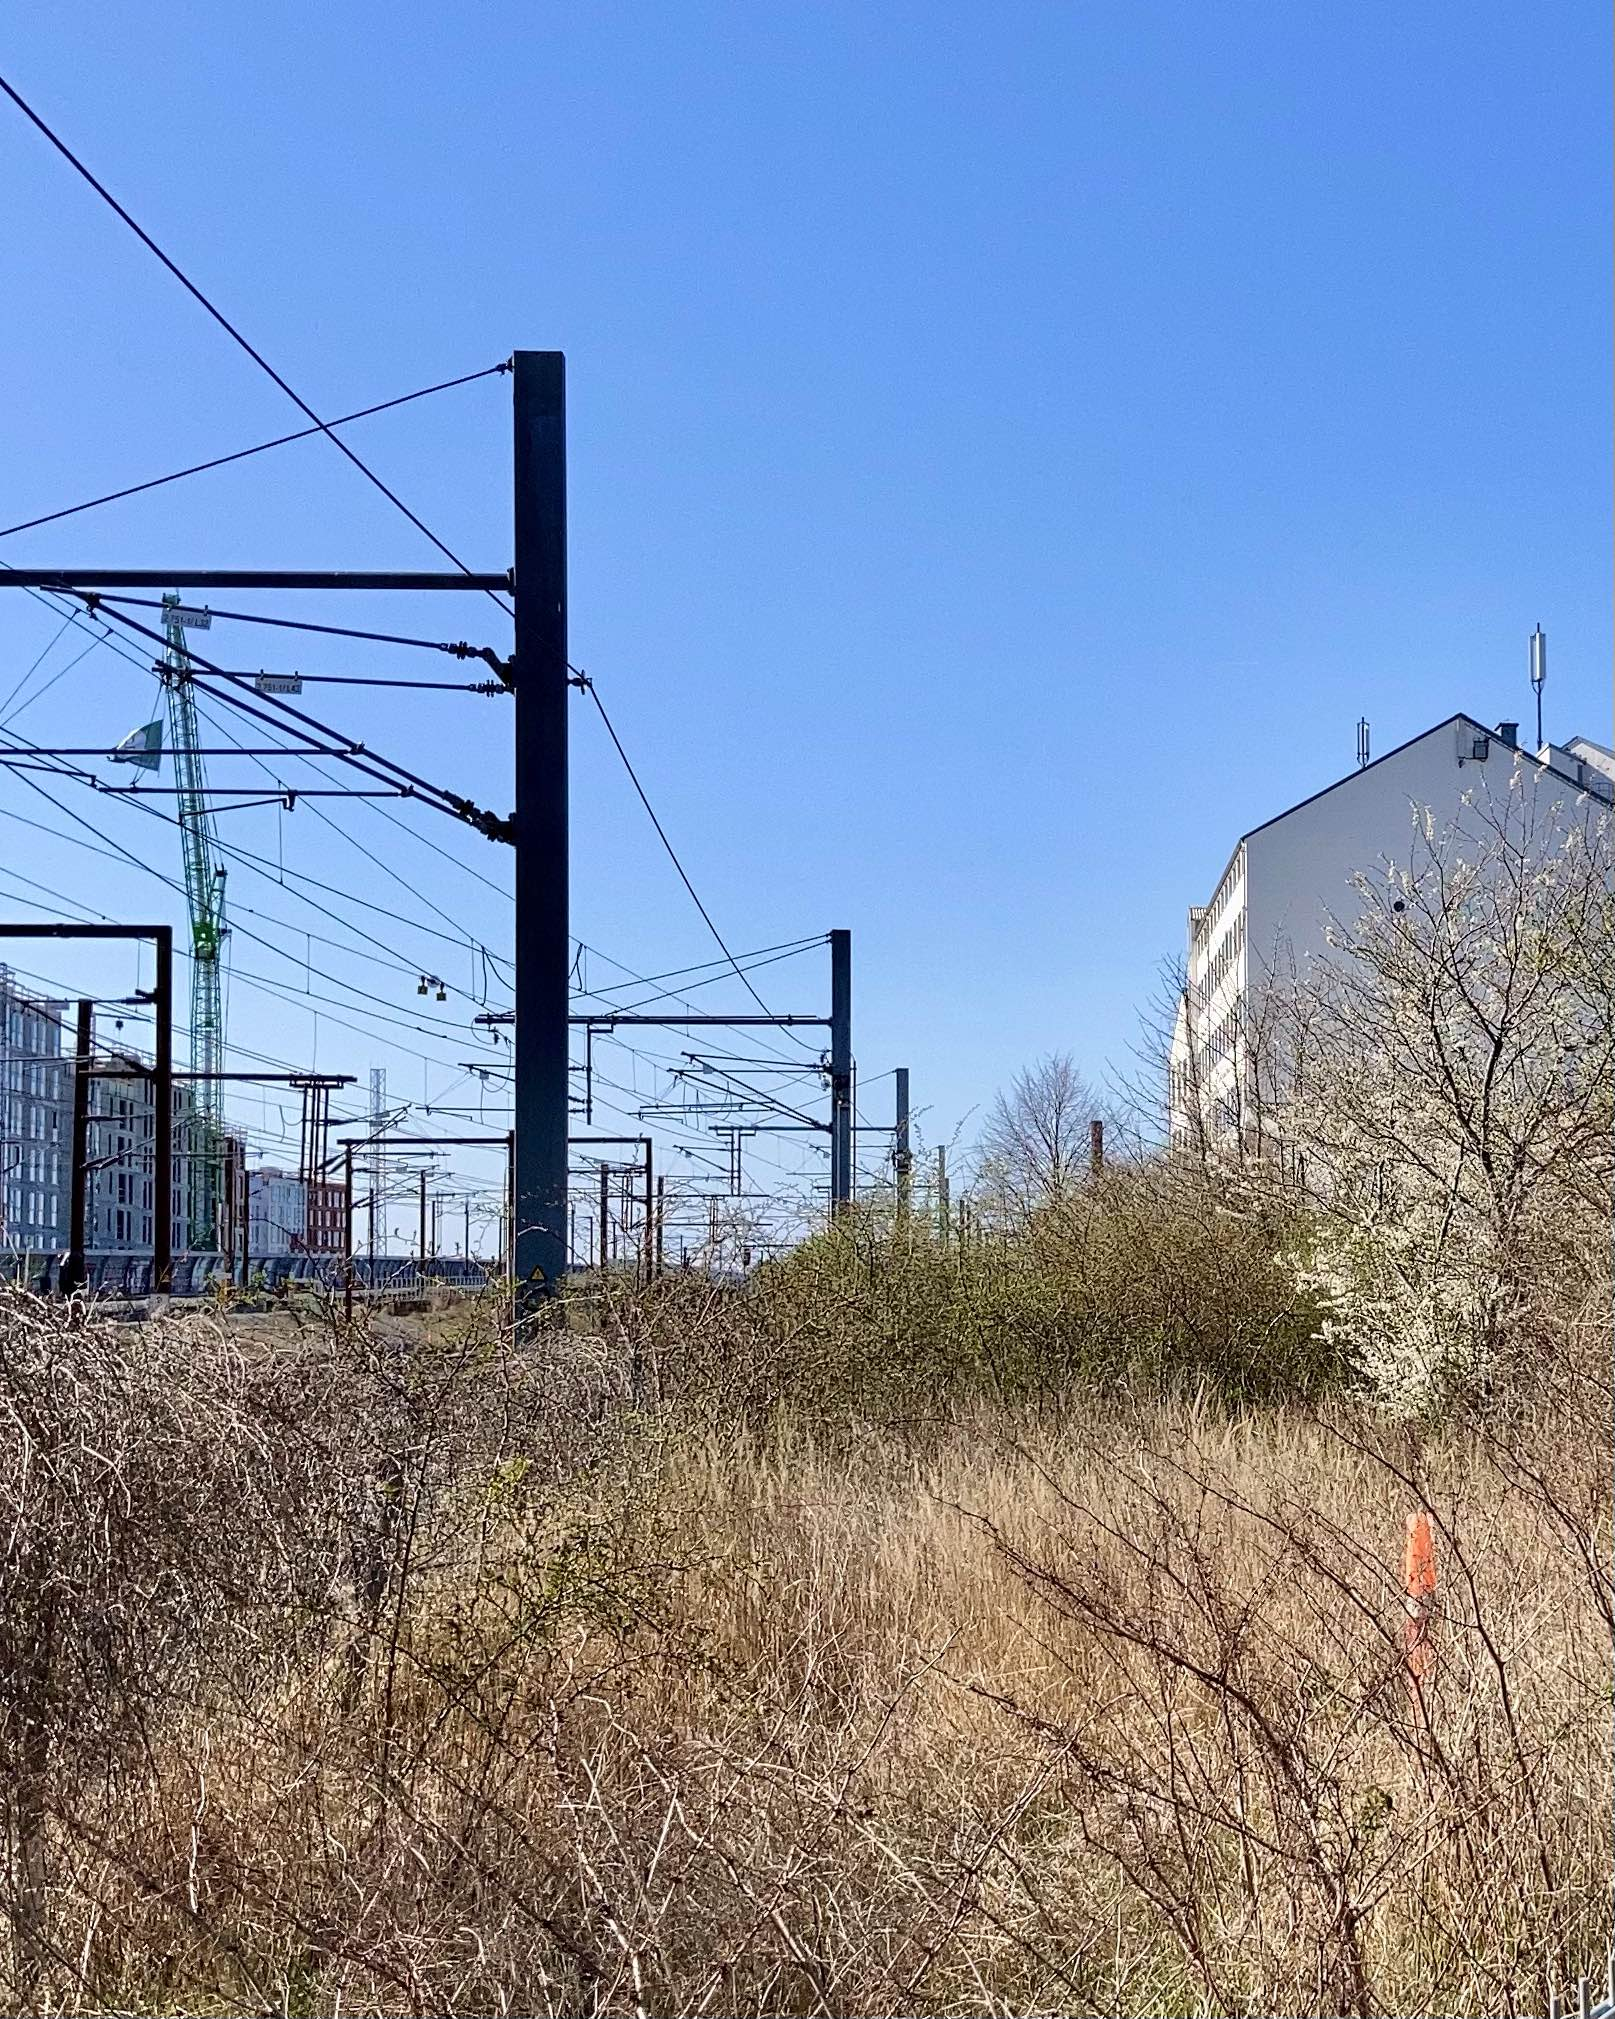 Train tracks, grass in the afternoon sun, a tree in blossom, a white building in the background. The angles of the train pylons and the roof of the building.